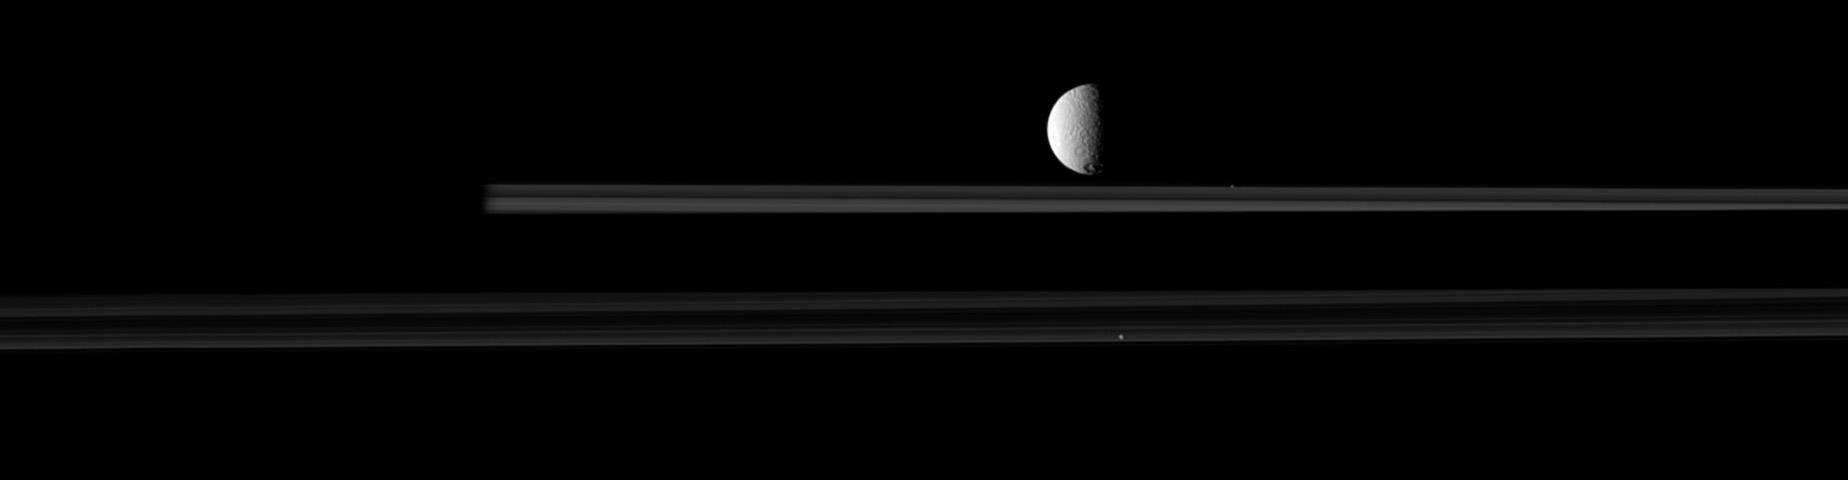 The moon Tethys is upstaged by two smaller moons, Pandora and Prometheus, in this image from NASA's Cassini spacecraft. Go to the Photojournal to view the animation.